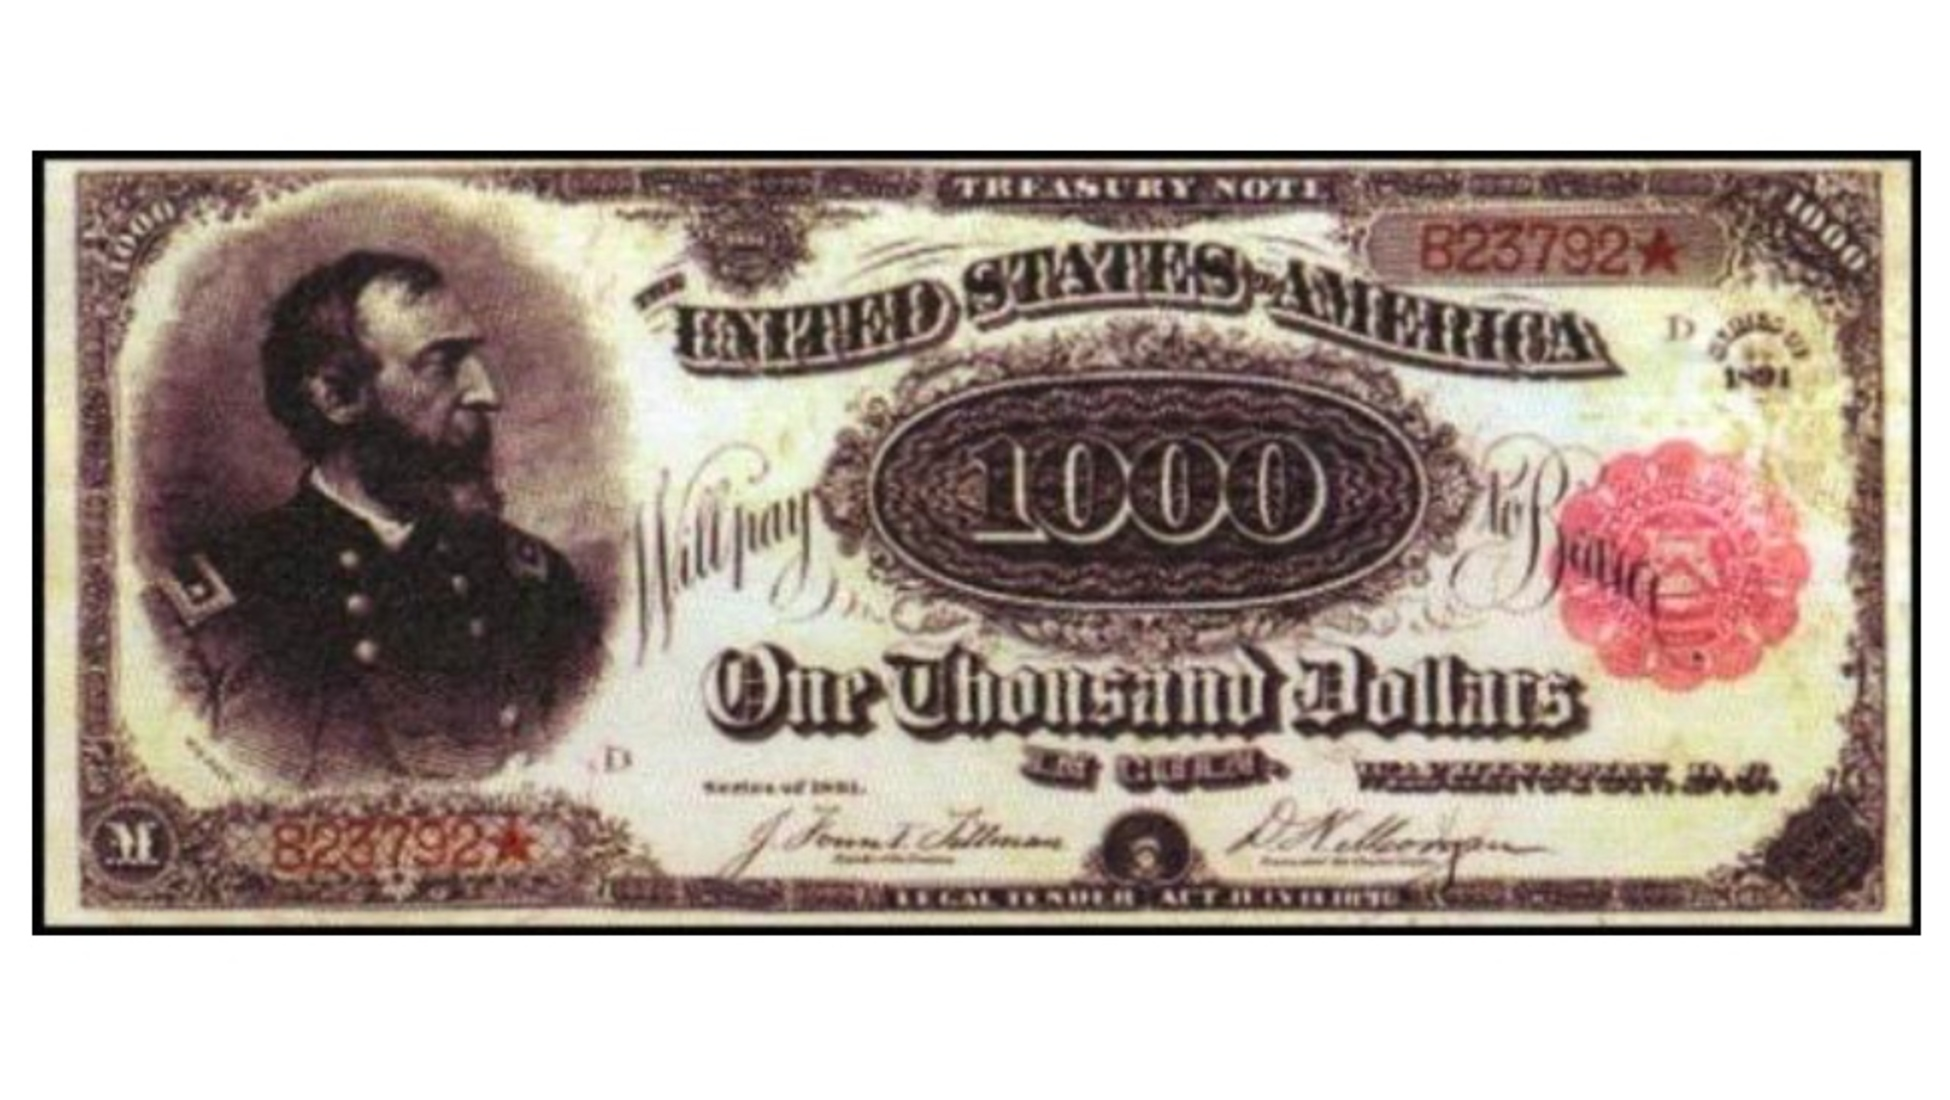 Top 10 most expensive banknotes ever sold - Catawiki